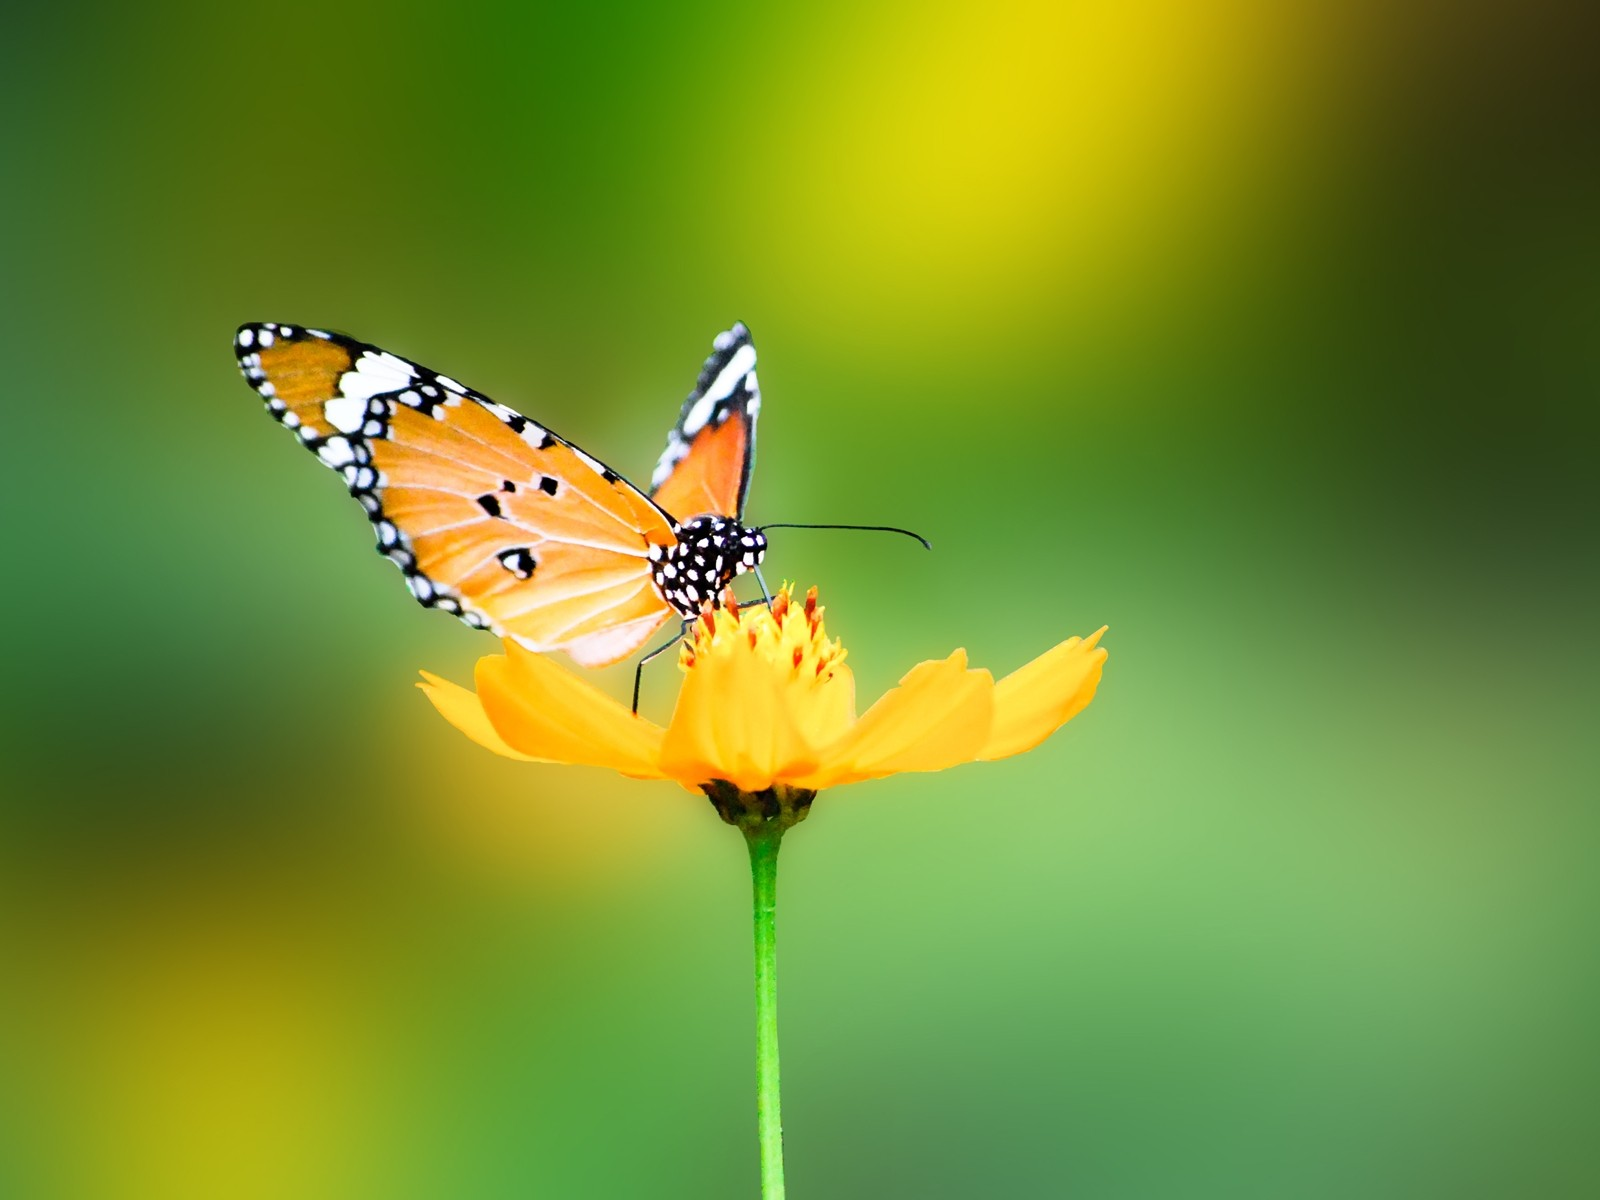 Stunning Butterfly Wallpaper 45642 1600x1200px Stunning Butterfly Wallpaper 45642